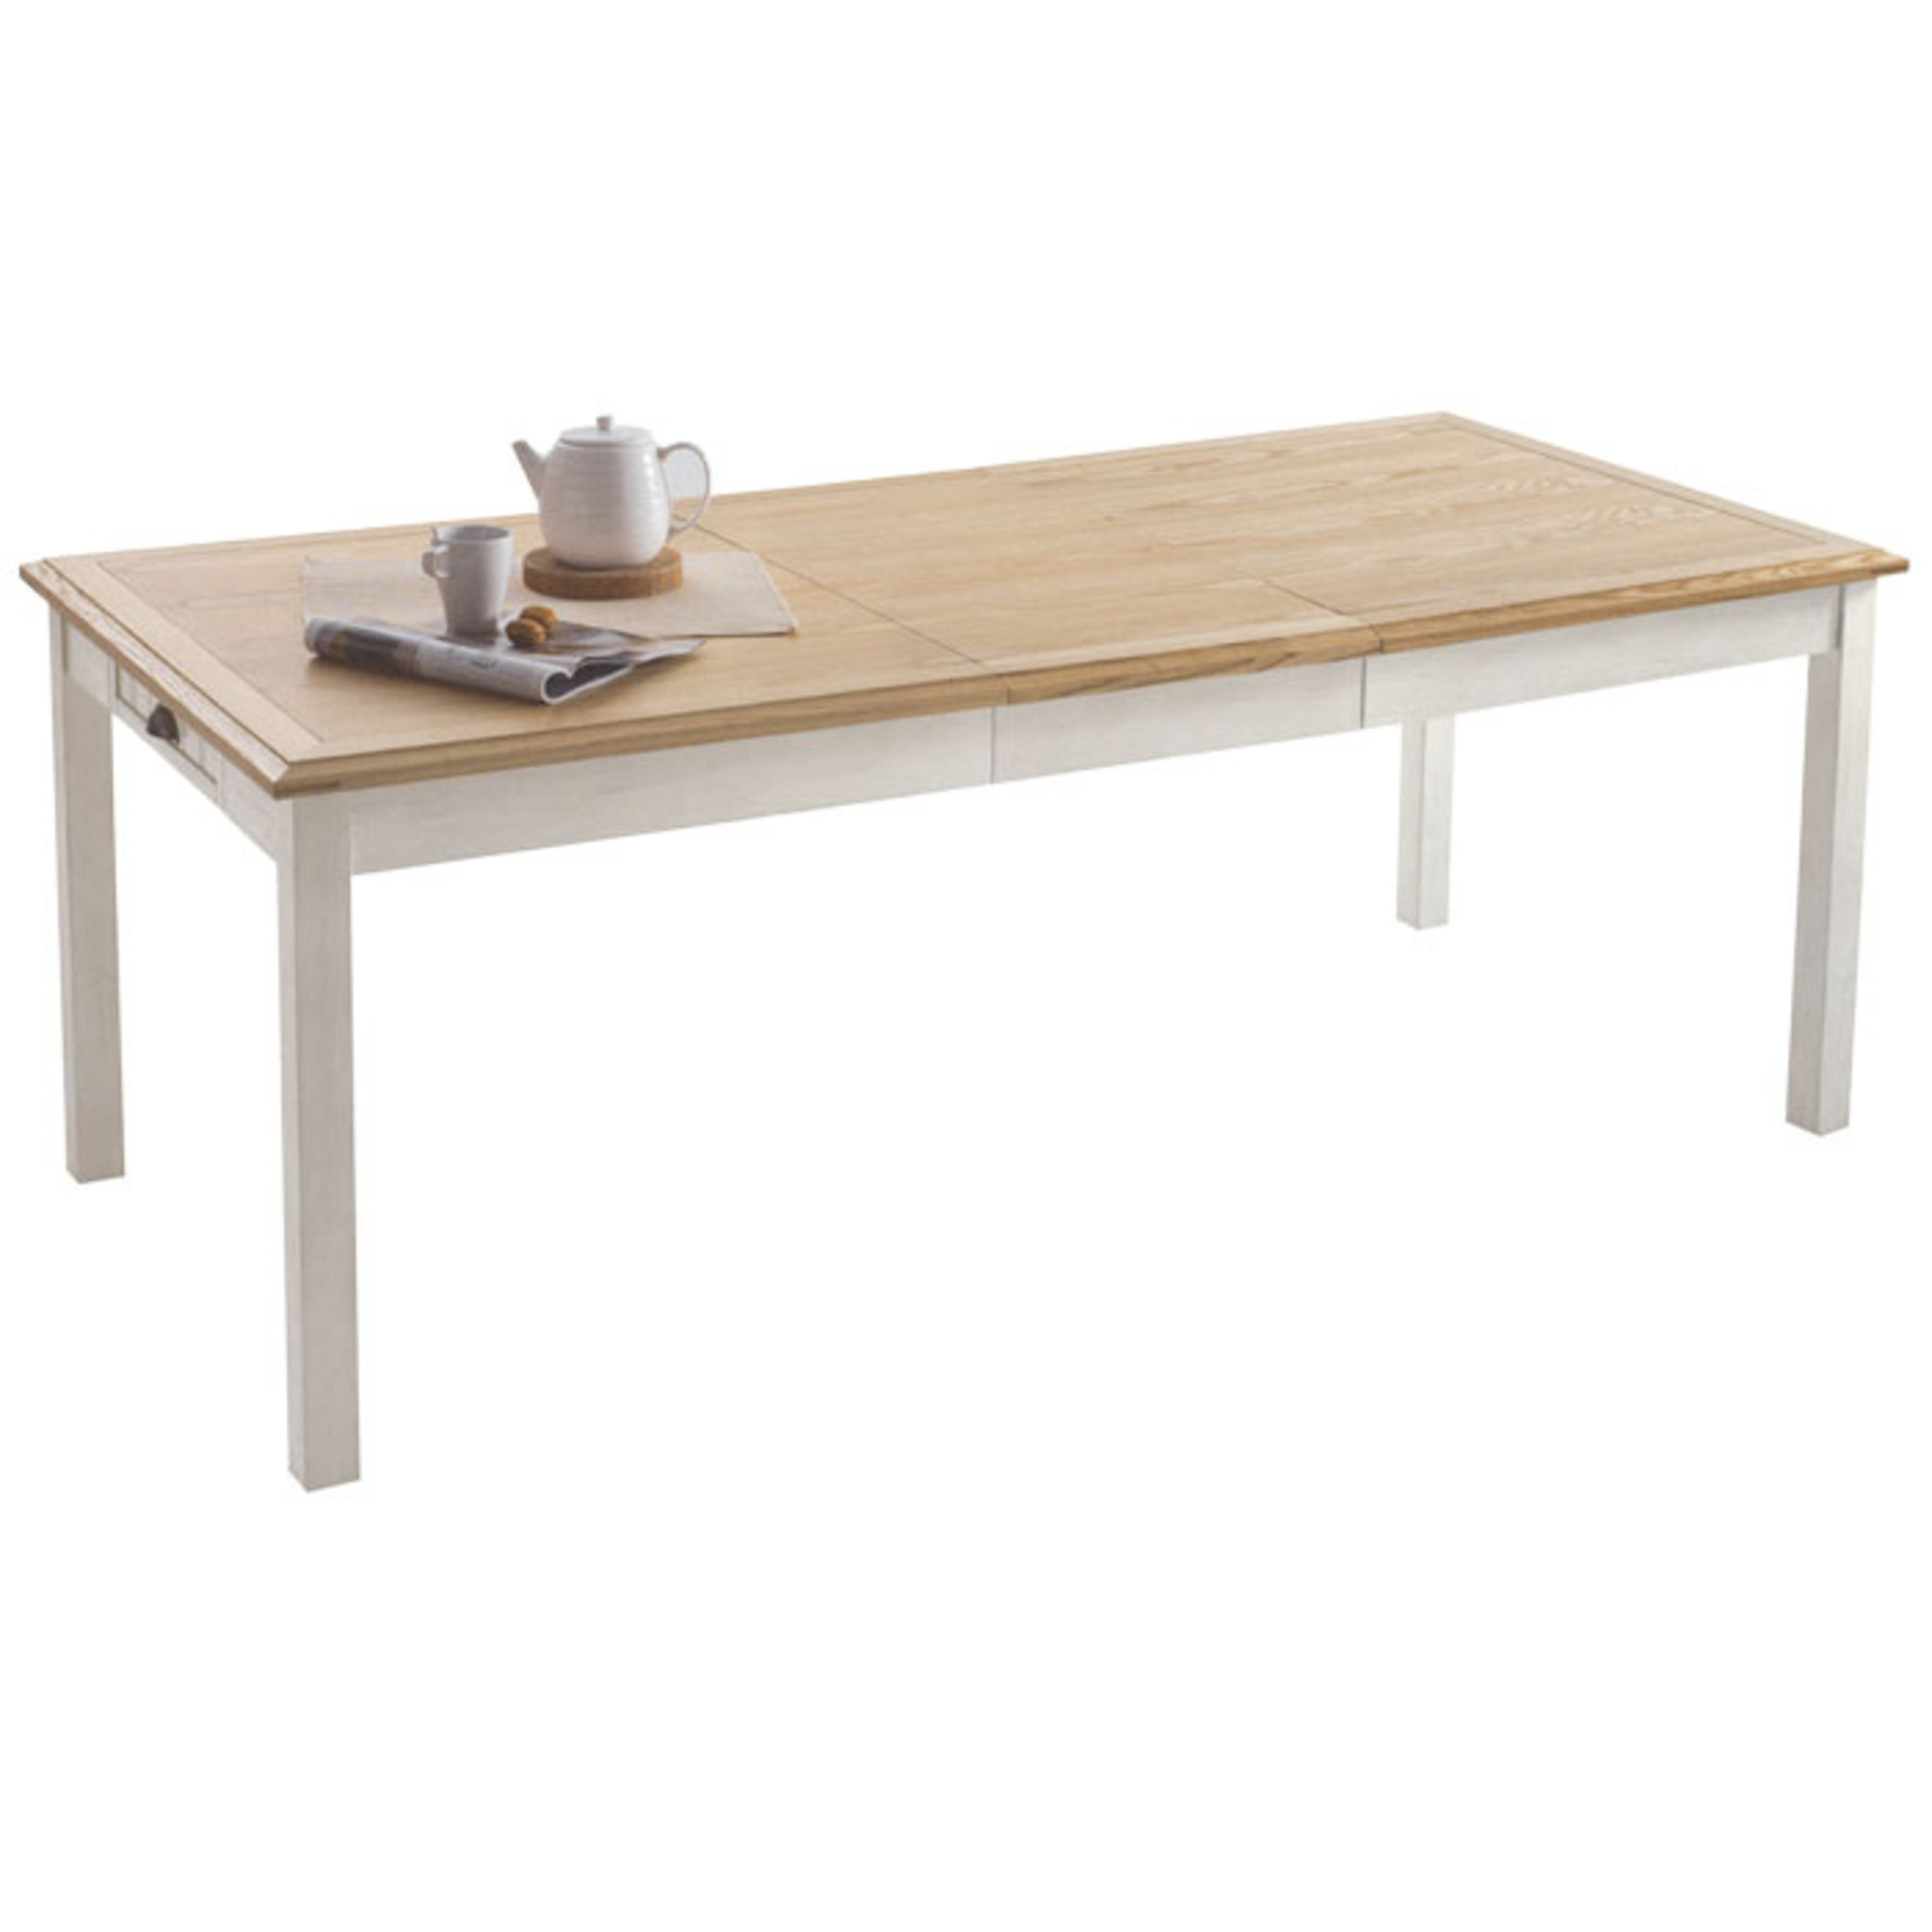 Table rectangulaire allonge berling blanc patin anniversaire 40 ans - Table en bois blanche ...